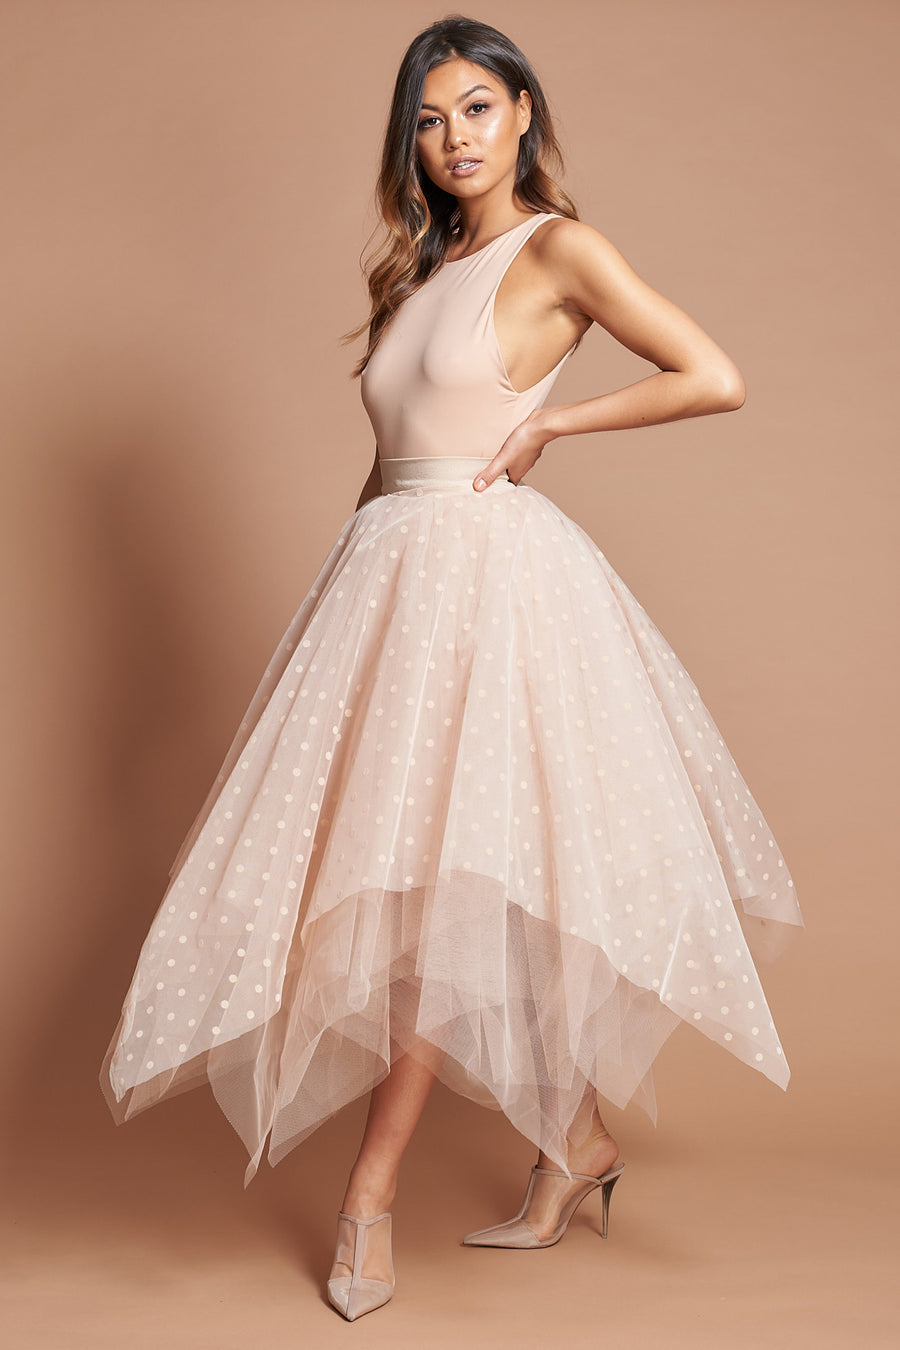 Beige Polka Dot Choppy Tulle Skirt